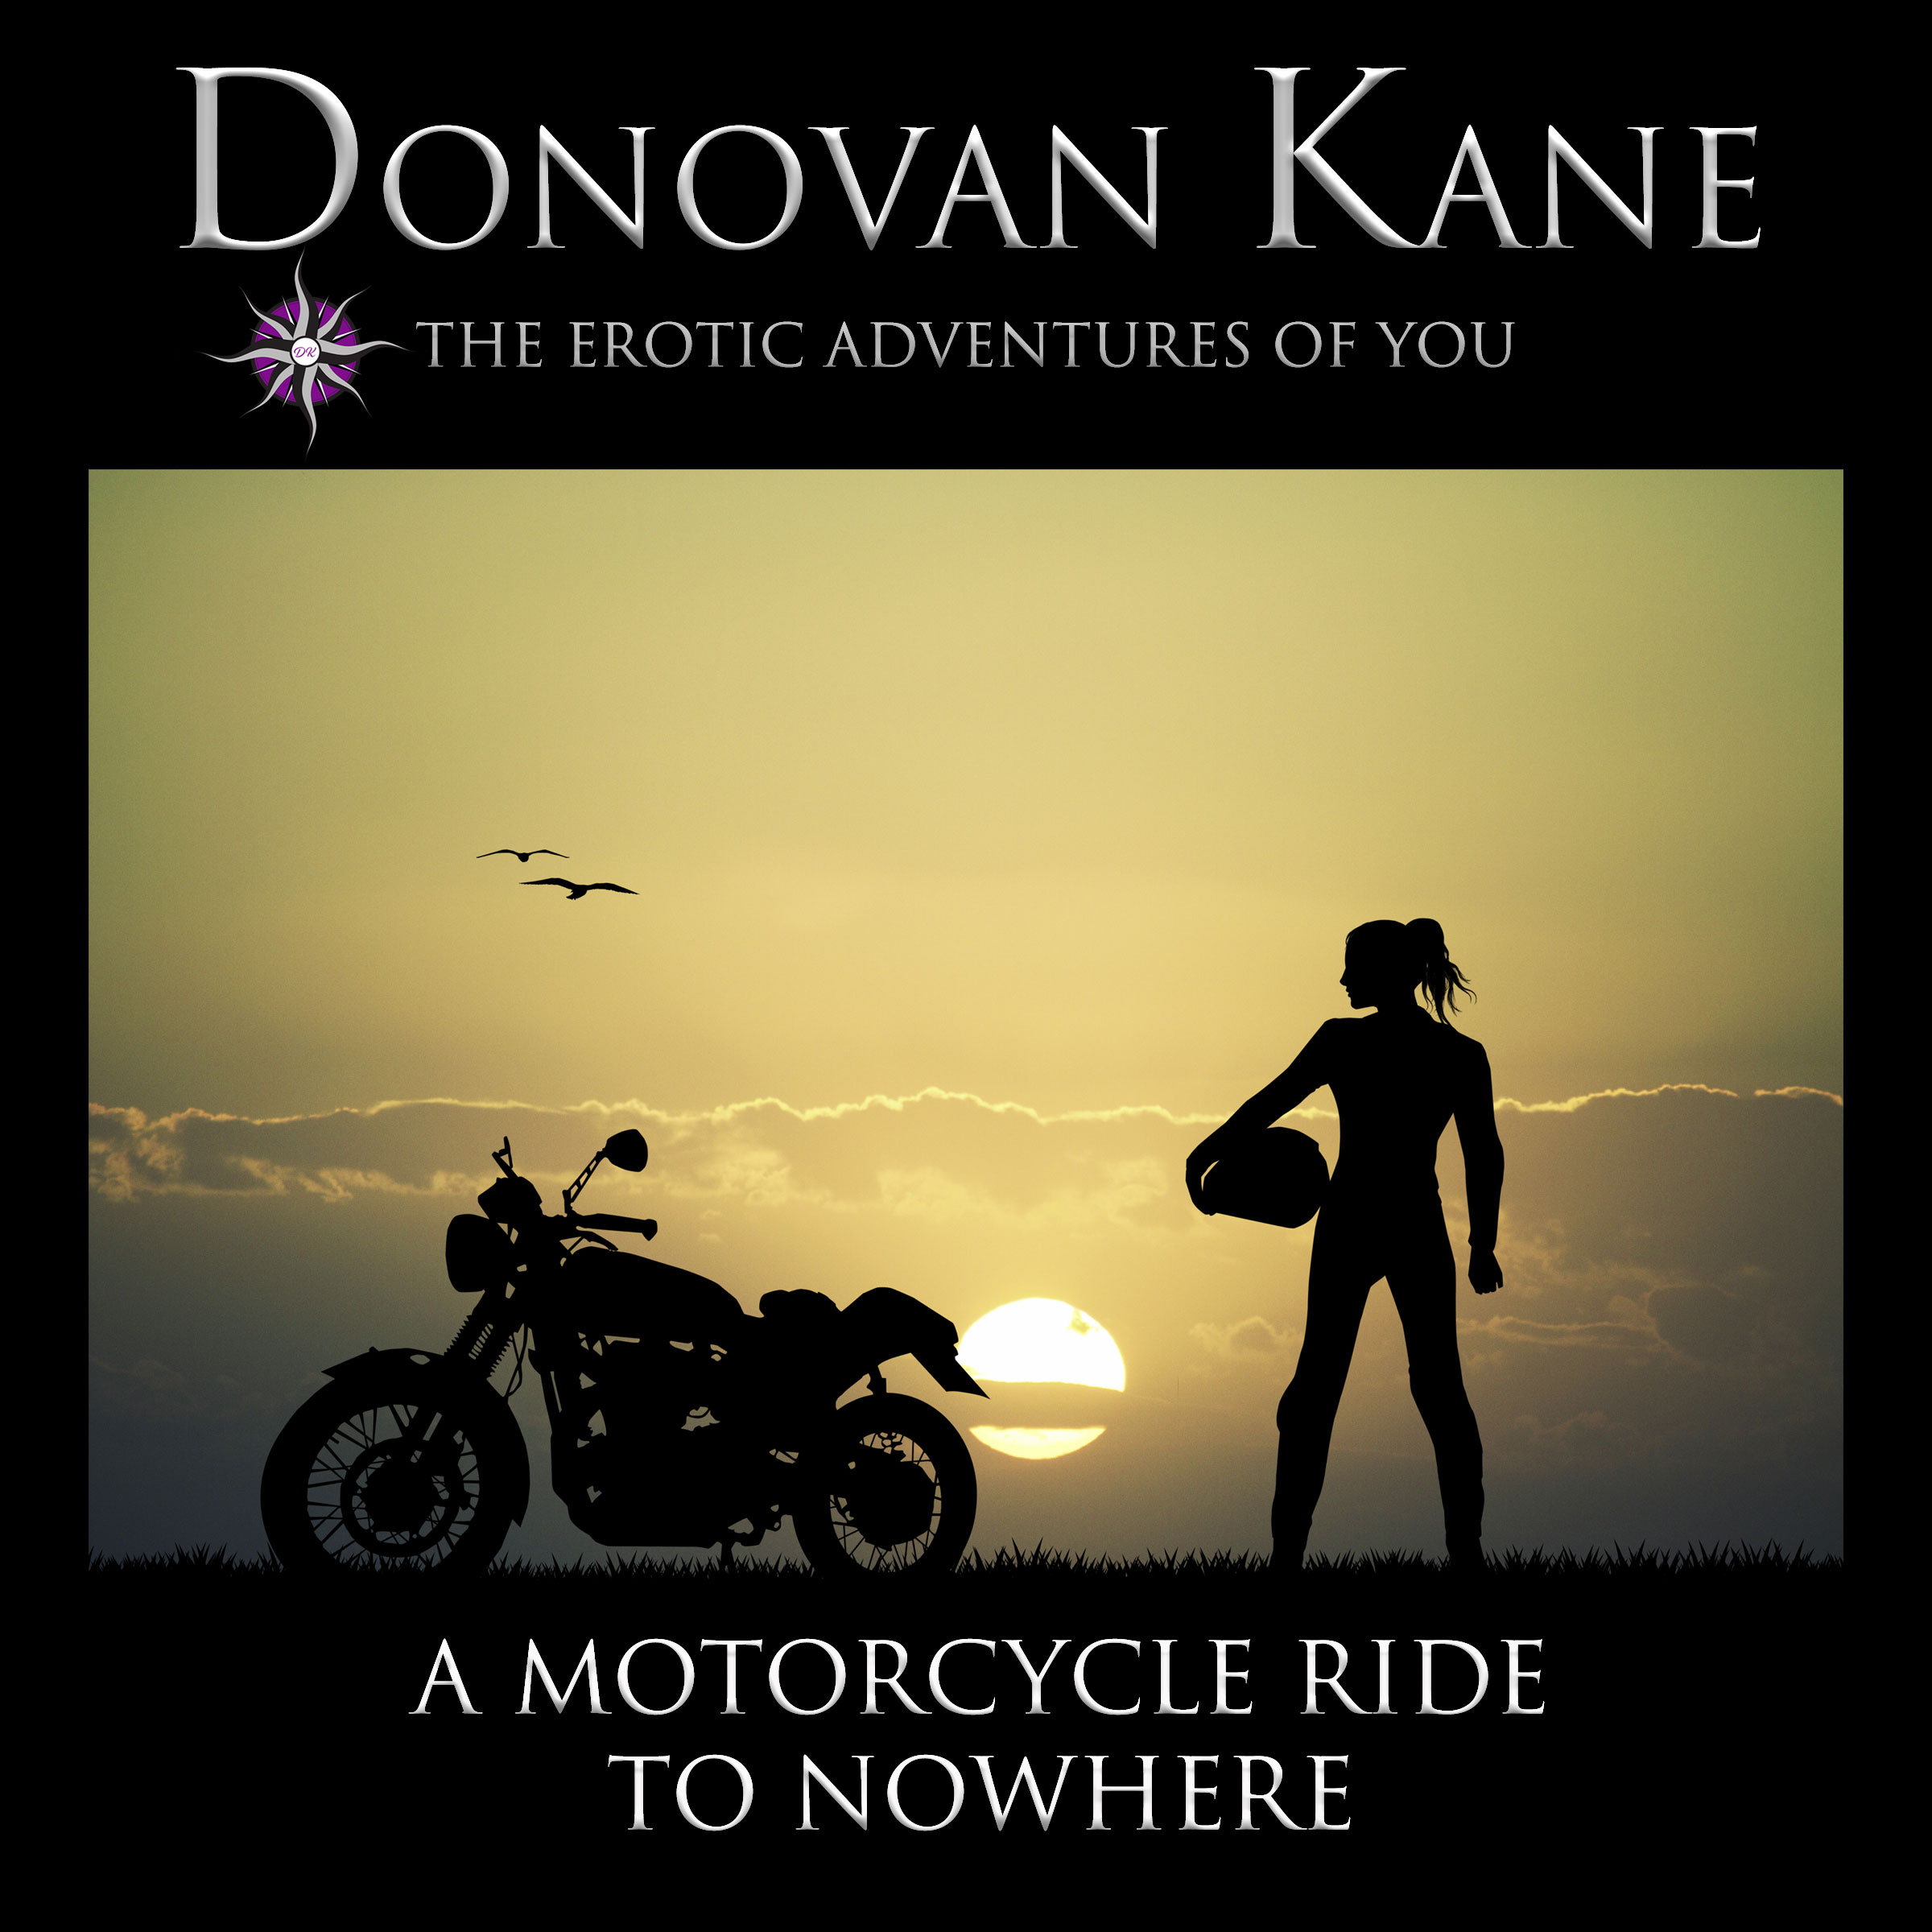 A Motorcycle Ride to Nowhere: The Erotic Adventures of You